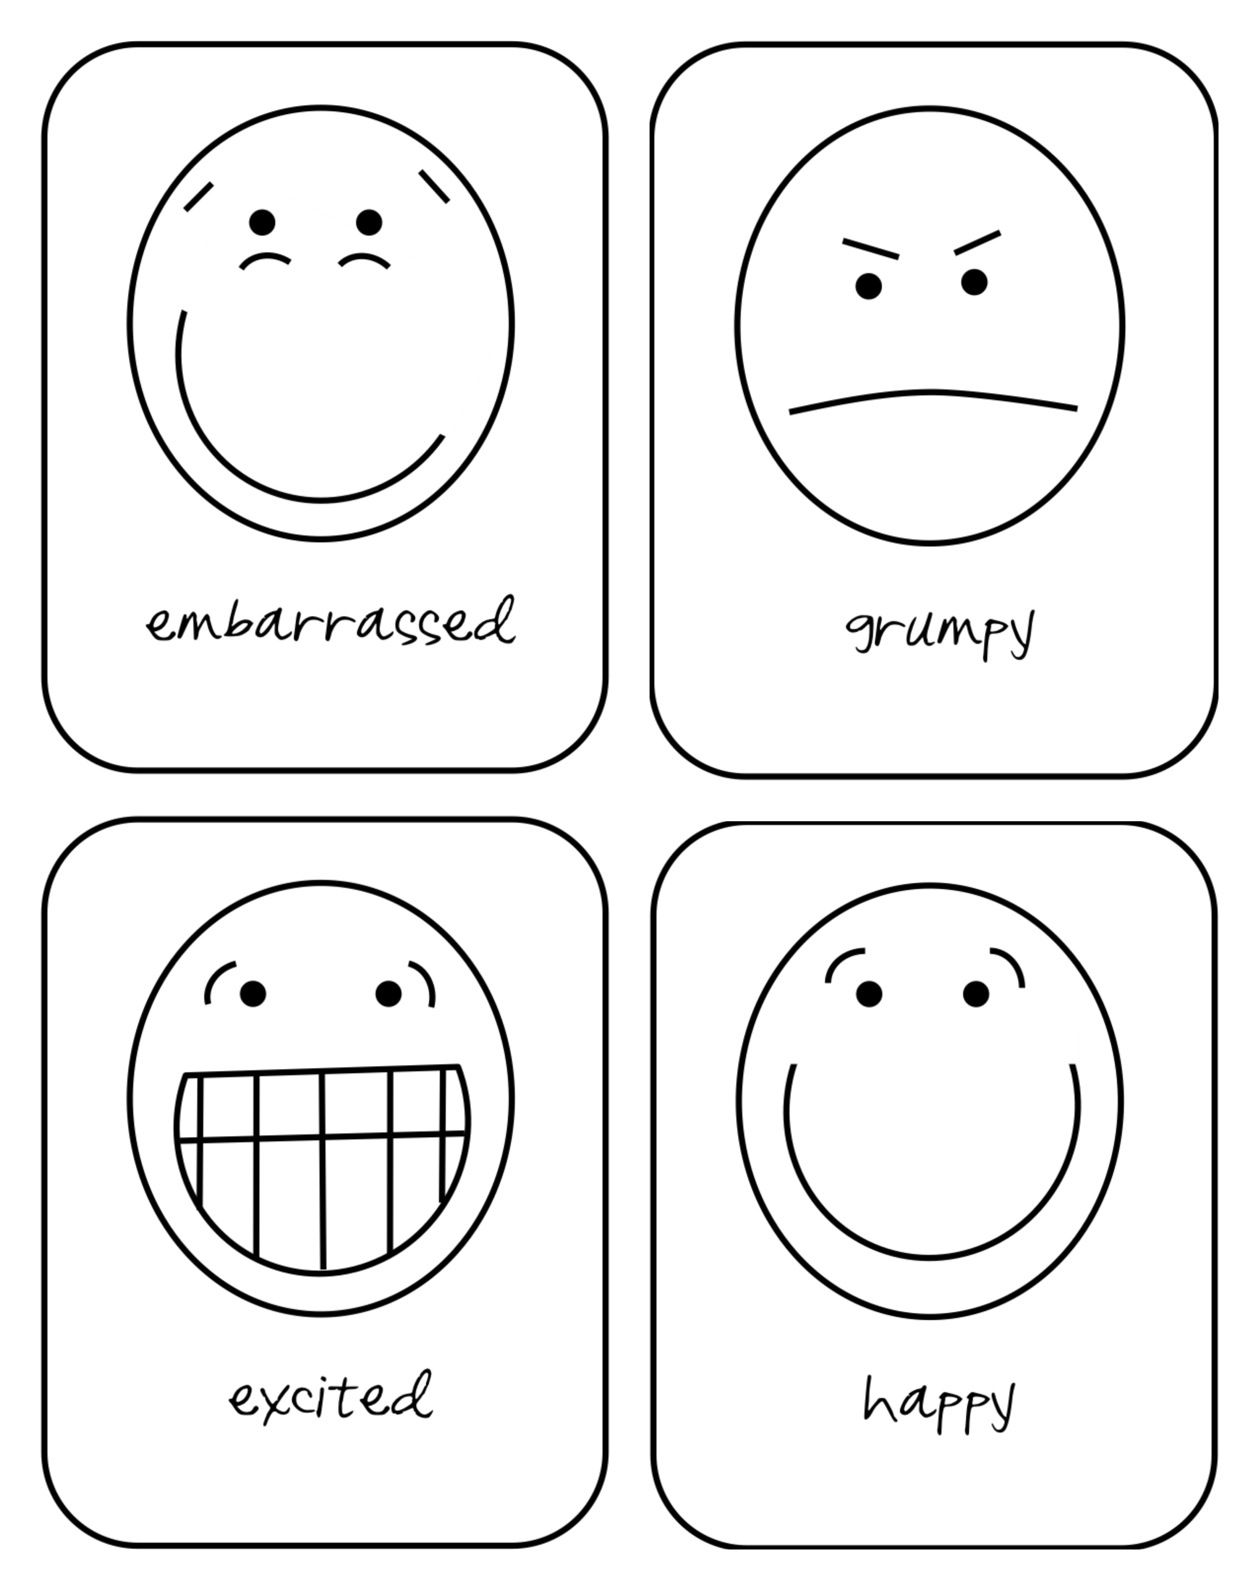 Free printable emotion flash cards for your toddler